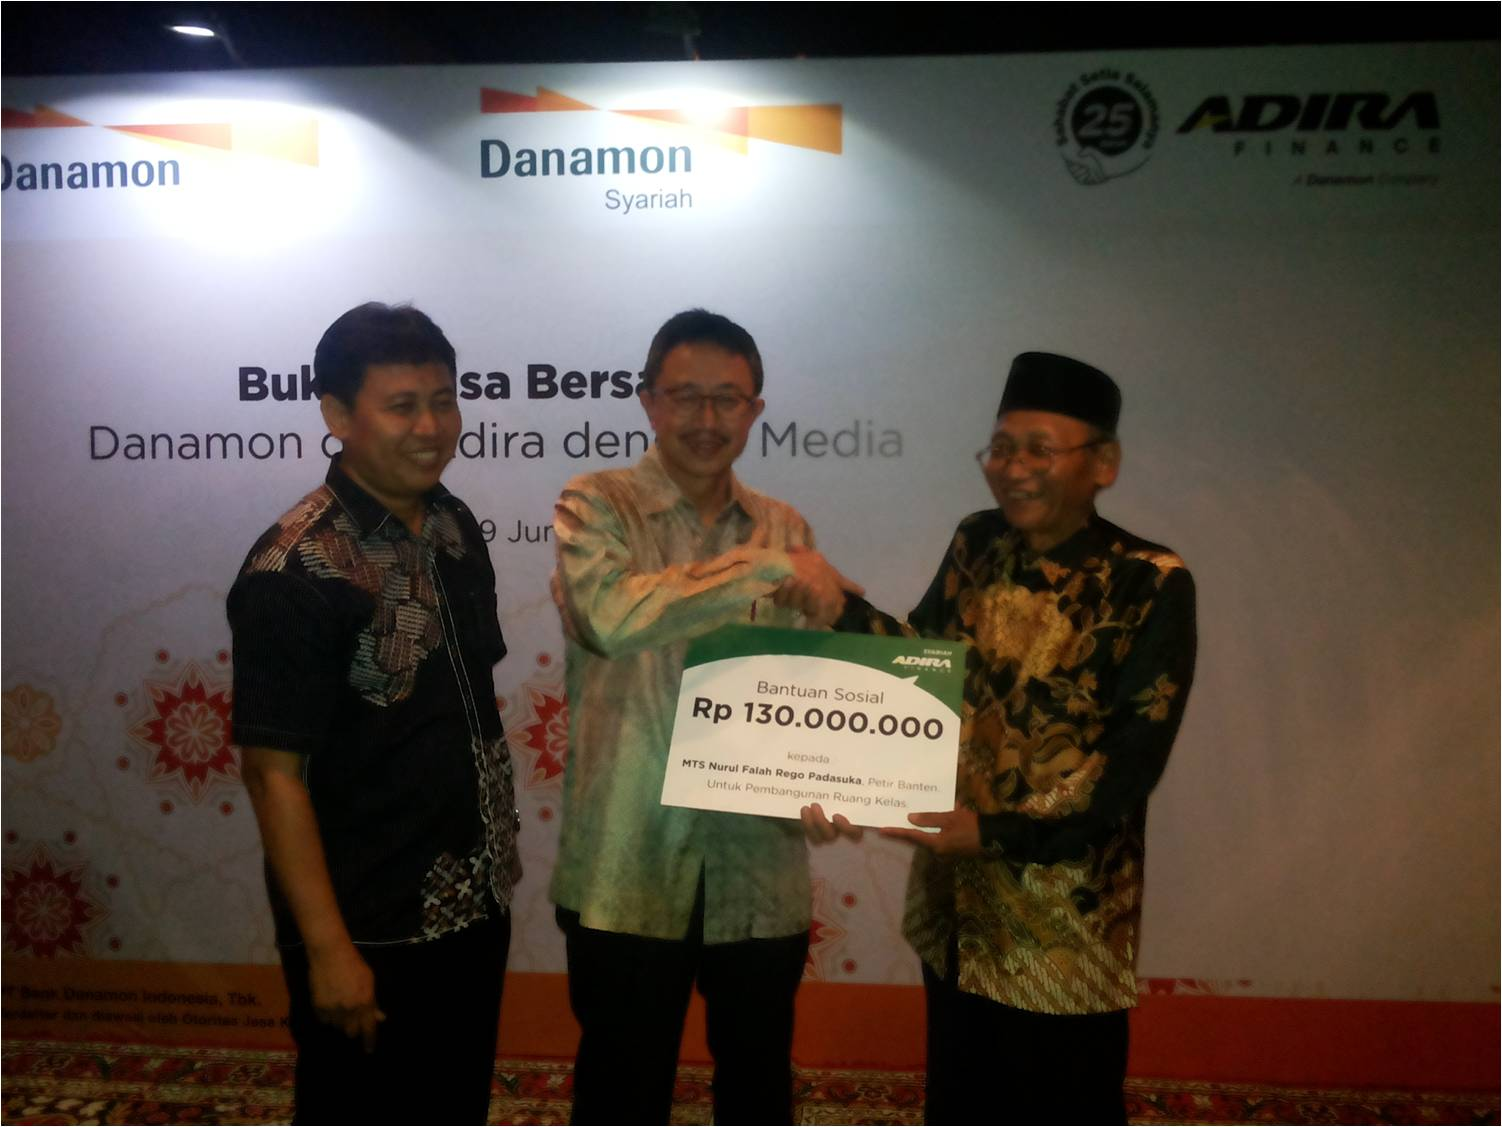 Danamon Syariah, Adira Finance, and Adira Insurance Held Iftar with Media